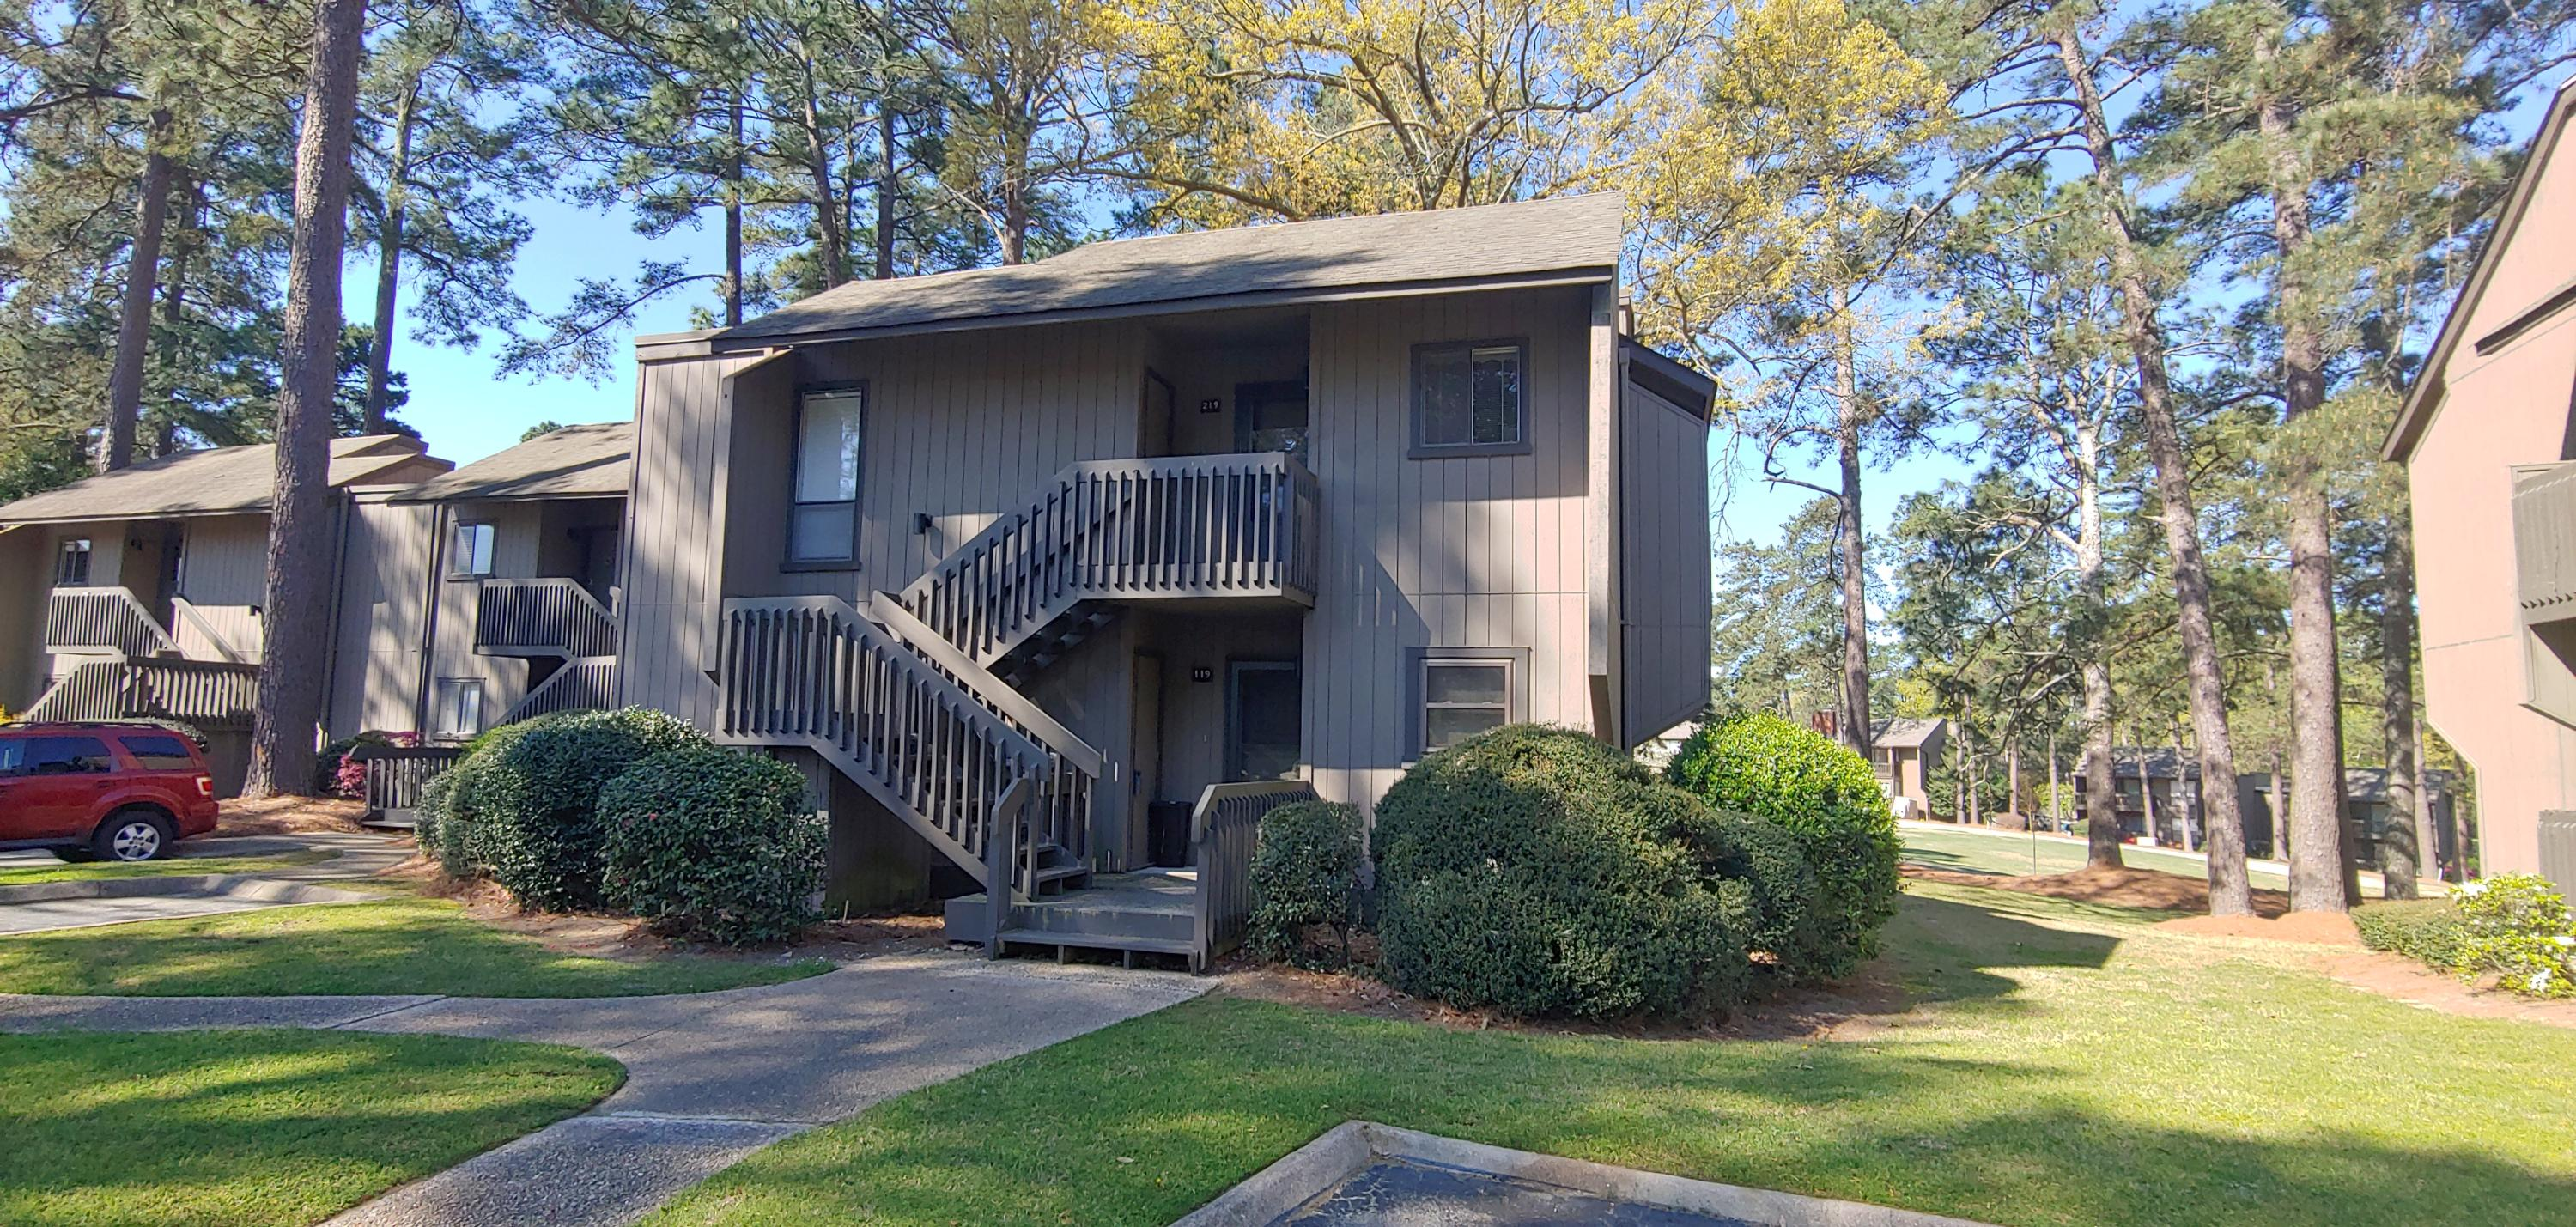 119  Prince Manor Road 119, Pinehurst, North Carolina